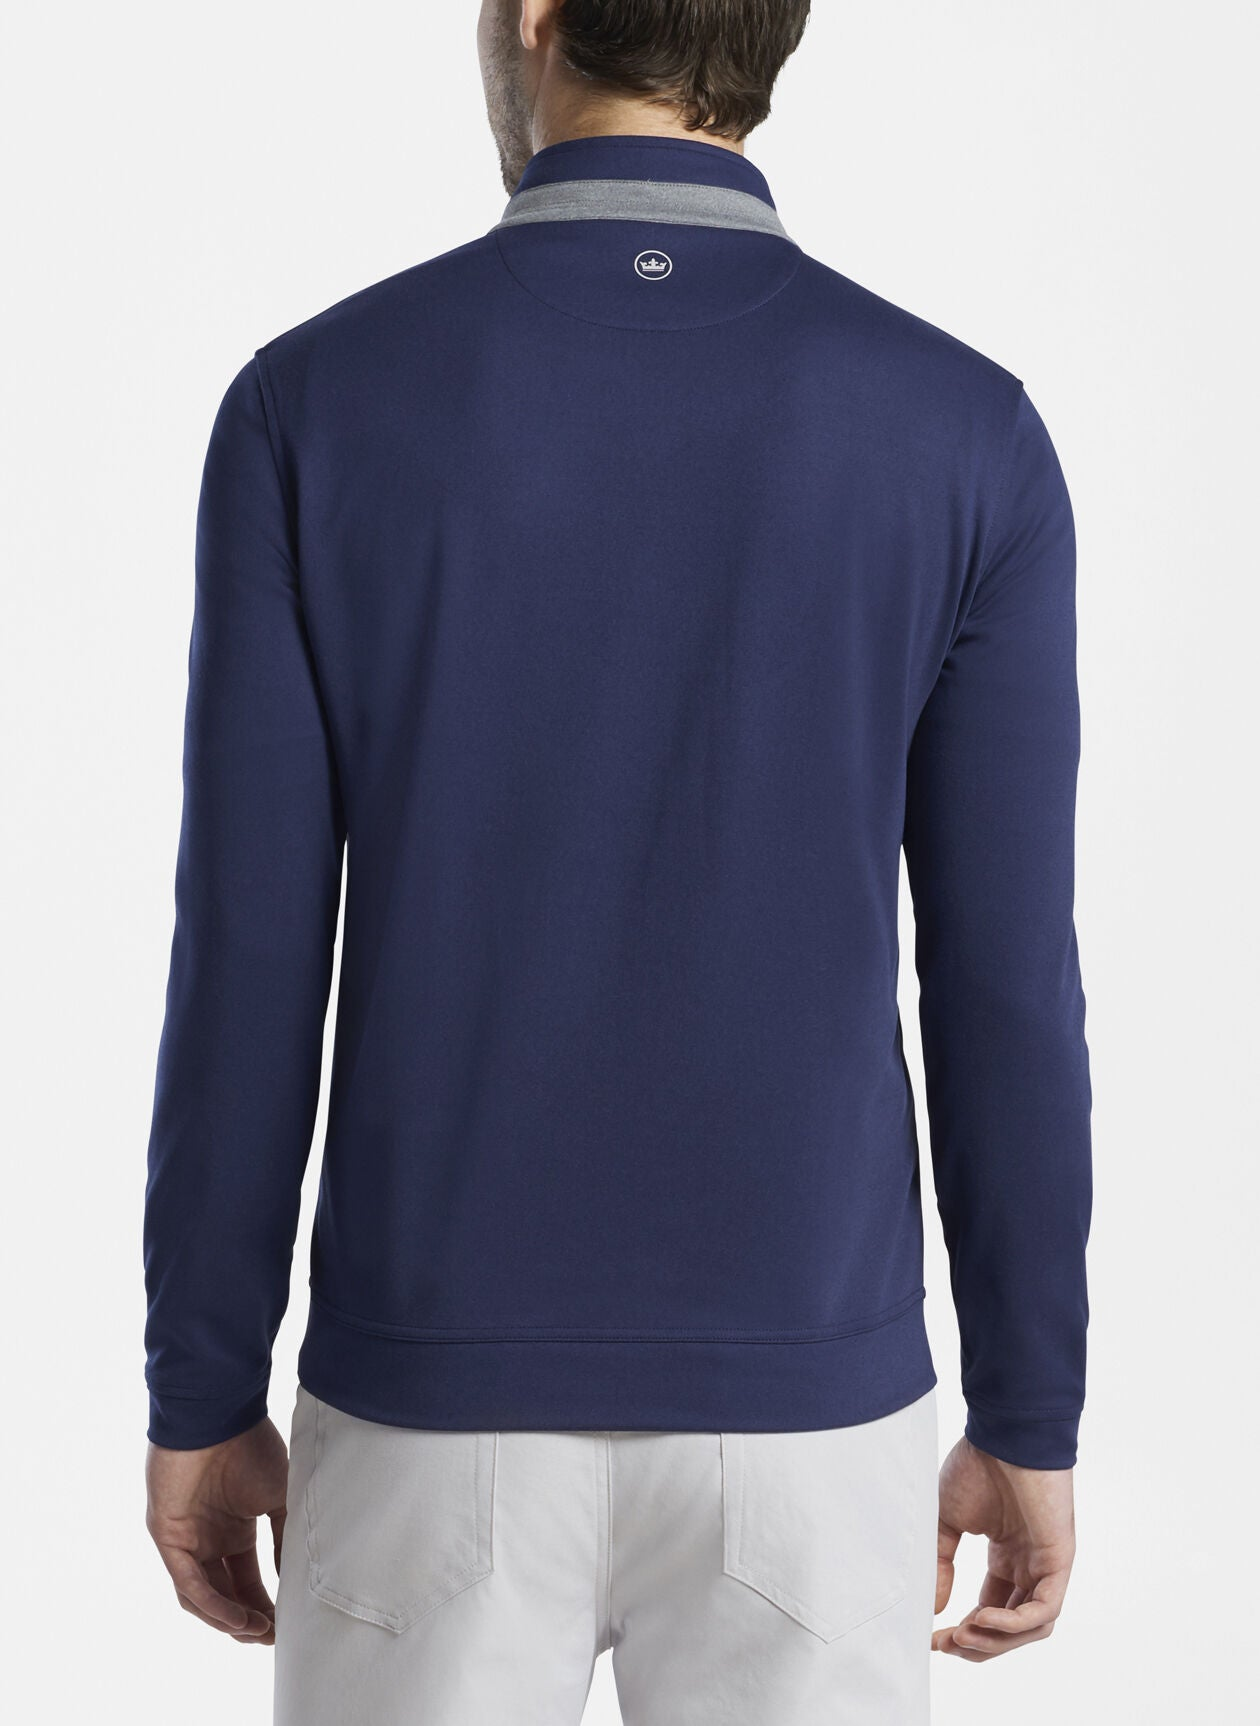 Peter Millar - Mackay Performance 1/4 Zip